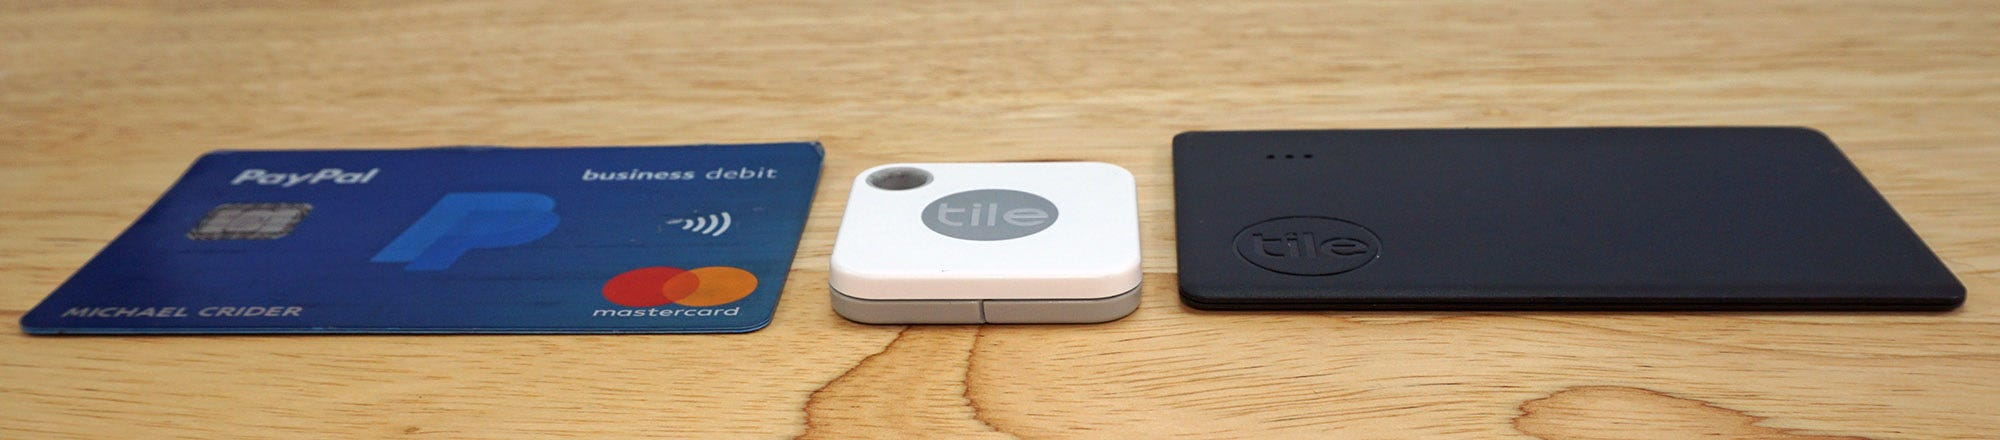 The Tile Slim, TIle Mate, and a credit card.